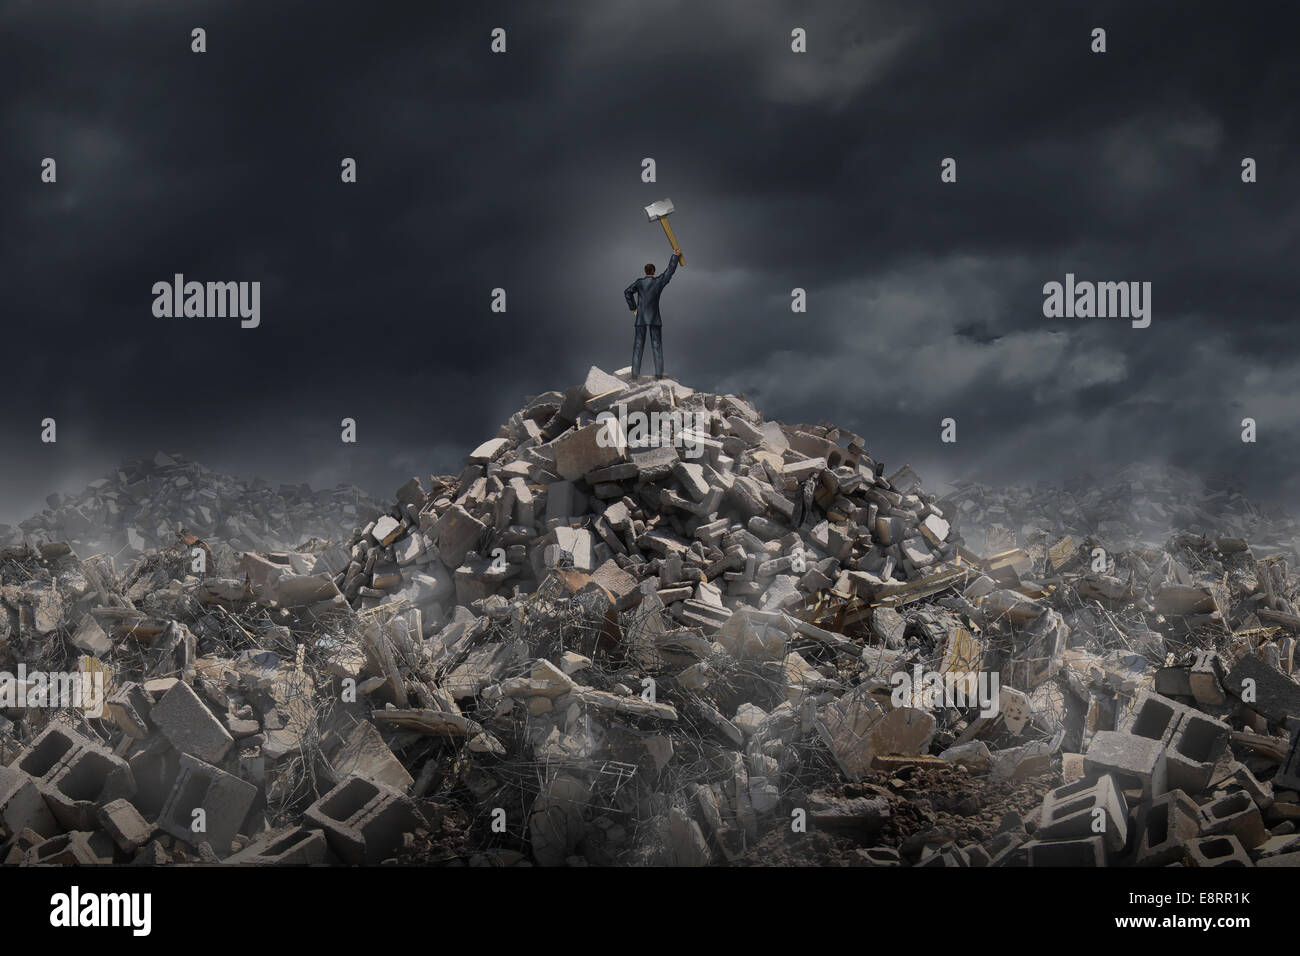 Destroy and demolish concept as a businessman  standing on a mountain of  building ruins holding a sledge hammer - Stock Image